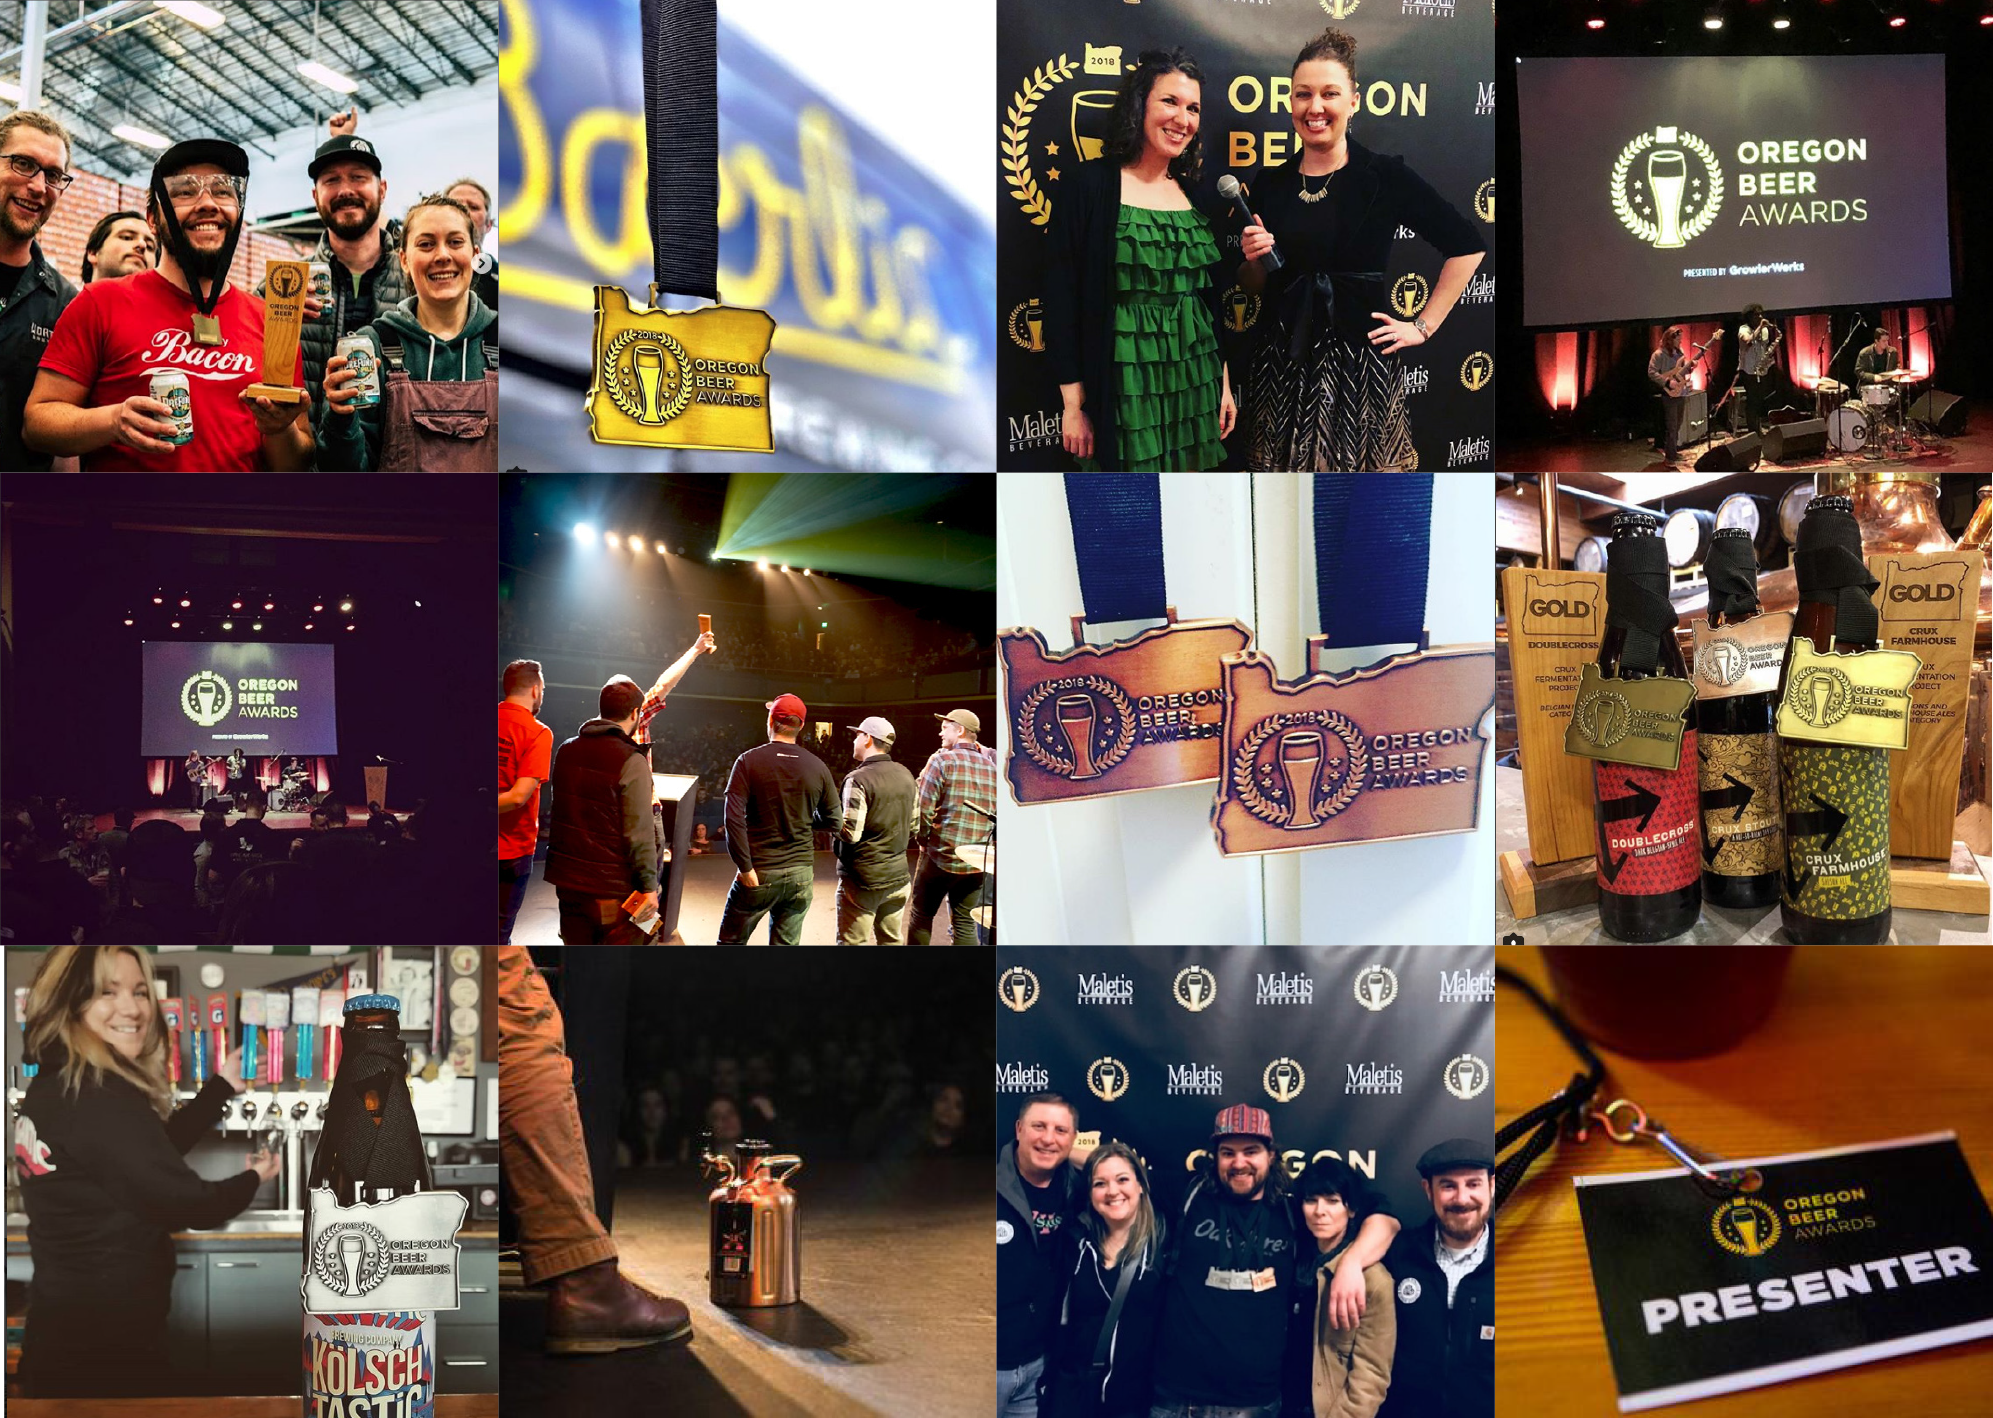 #oregonbeerawards - Visit collection of photos from social media here.View GrowerWerks photos here.